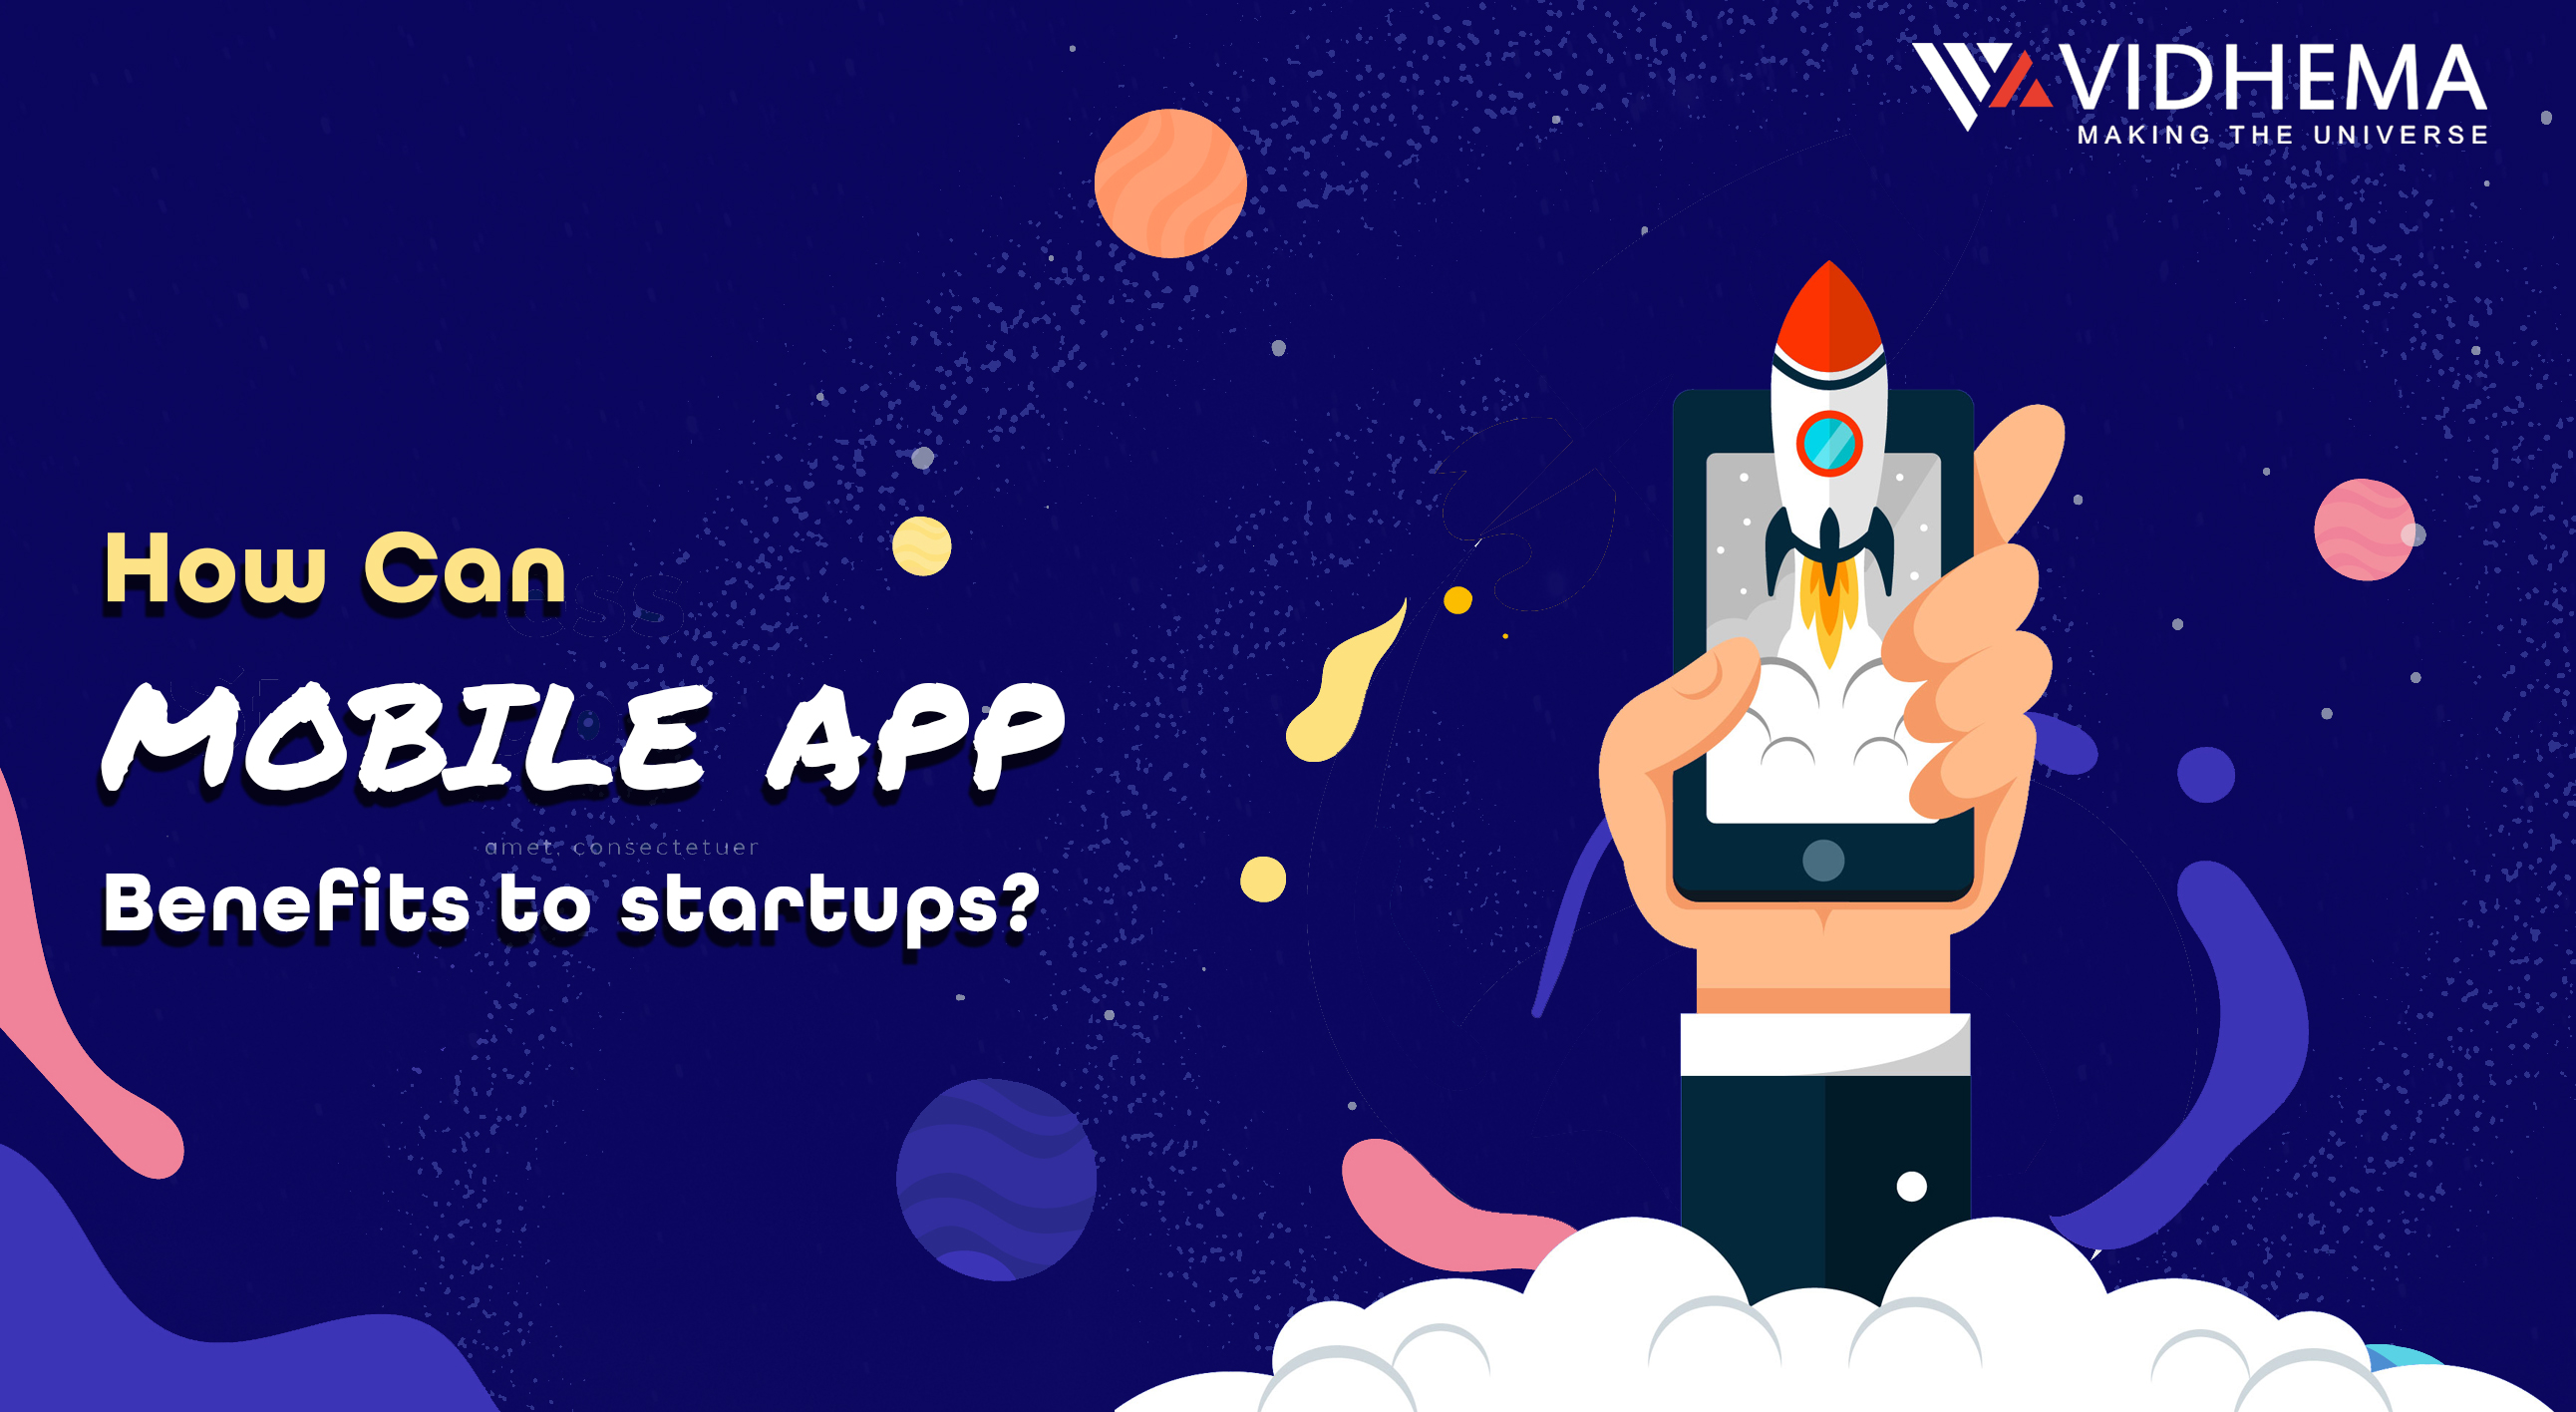 How Can Mobile App Benefits to startups?